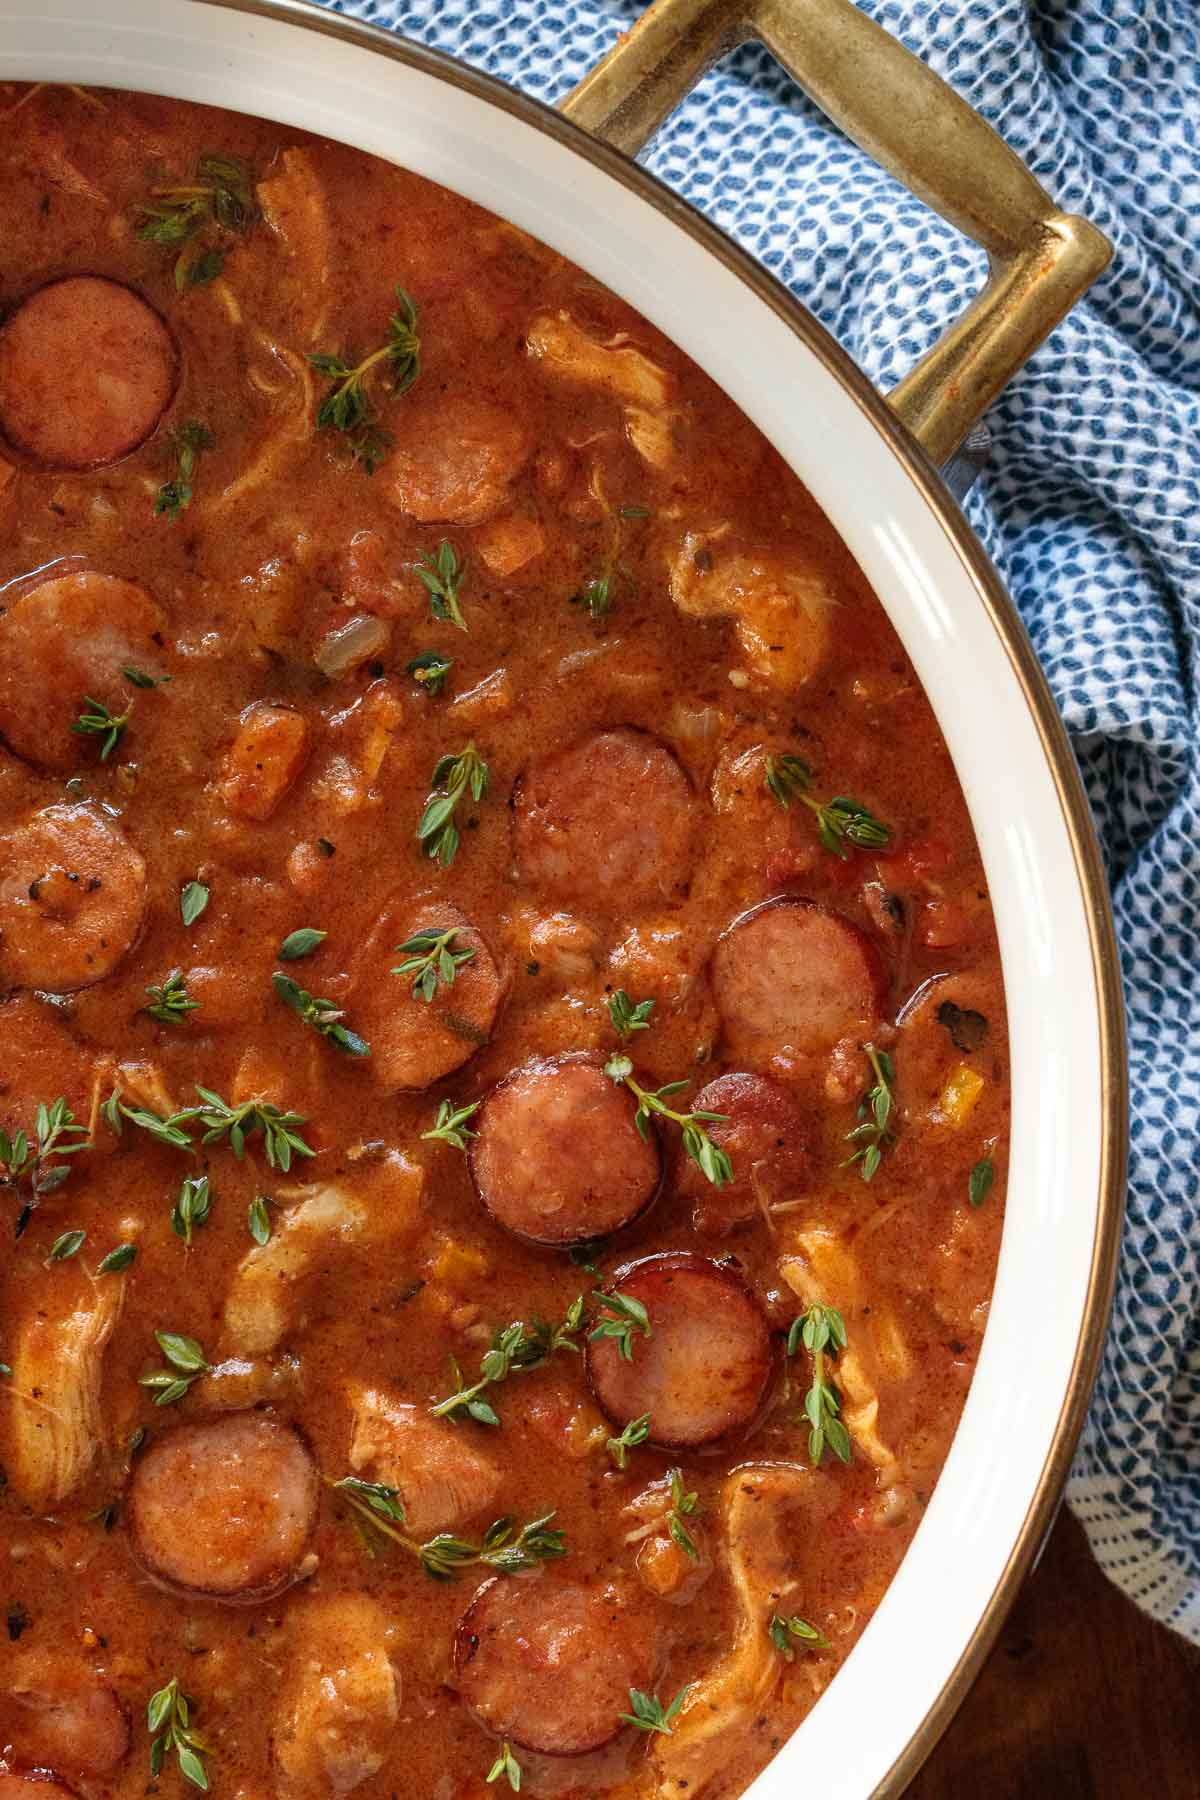 Overhead medium closeup photo of a pot of Make-Ahead Chicken Andouille Gumbo.